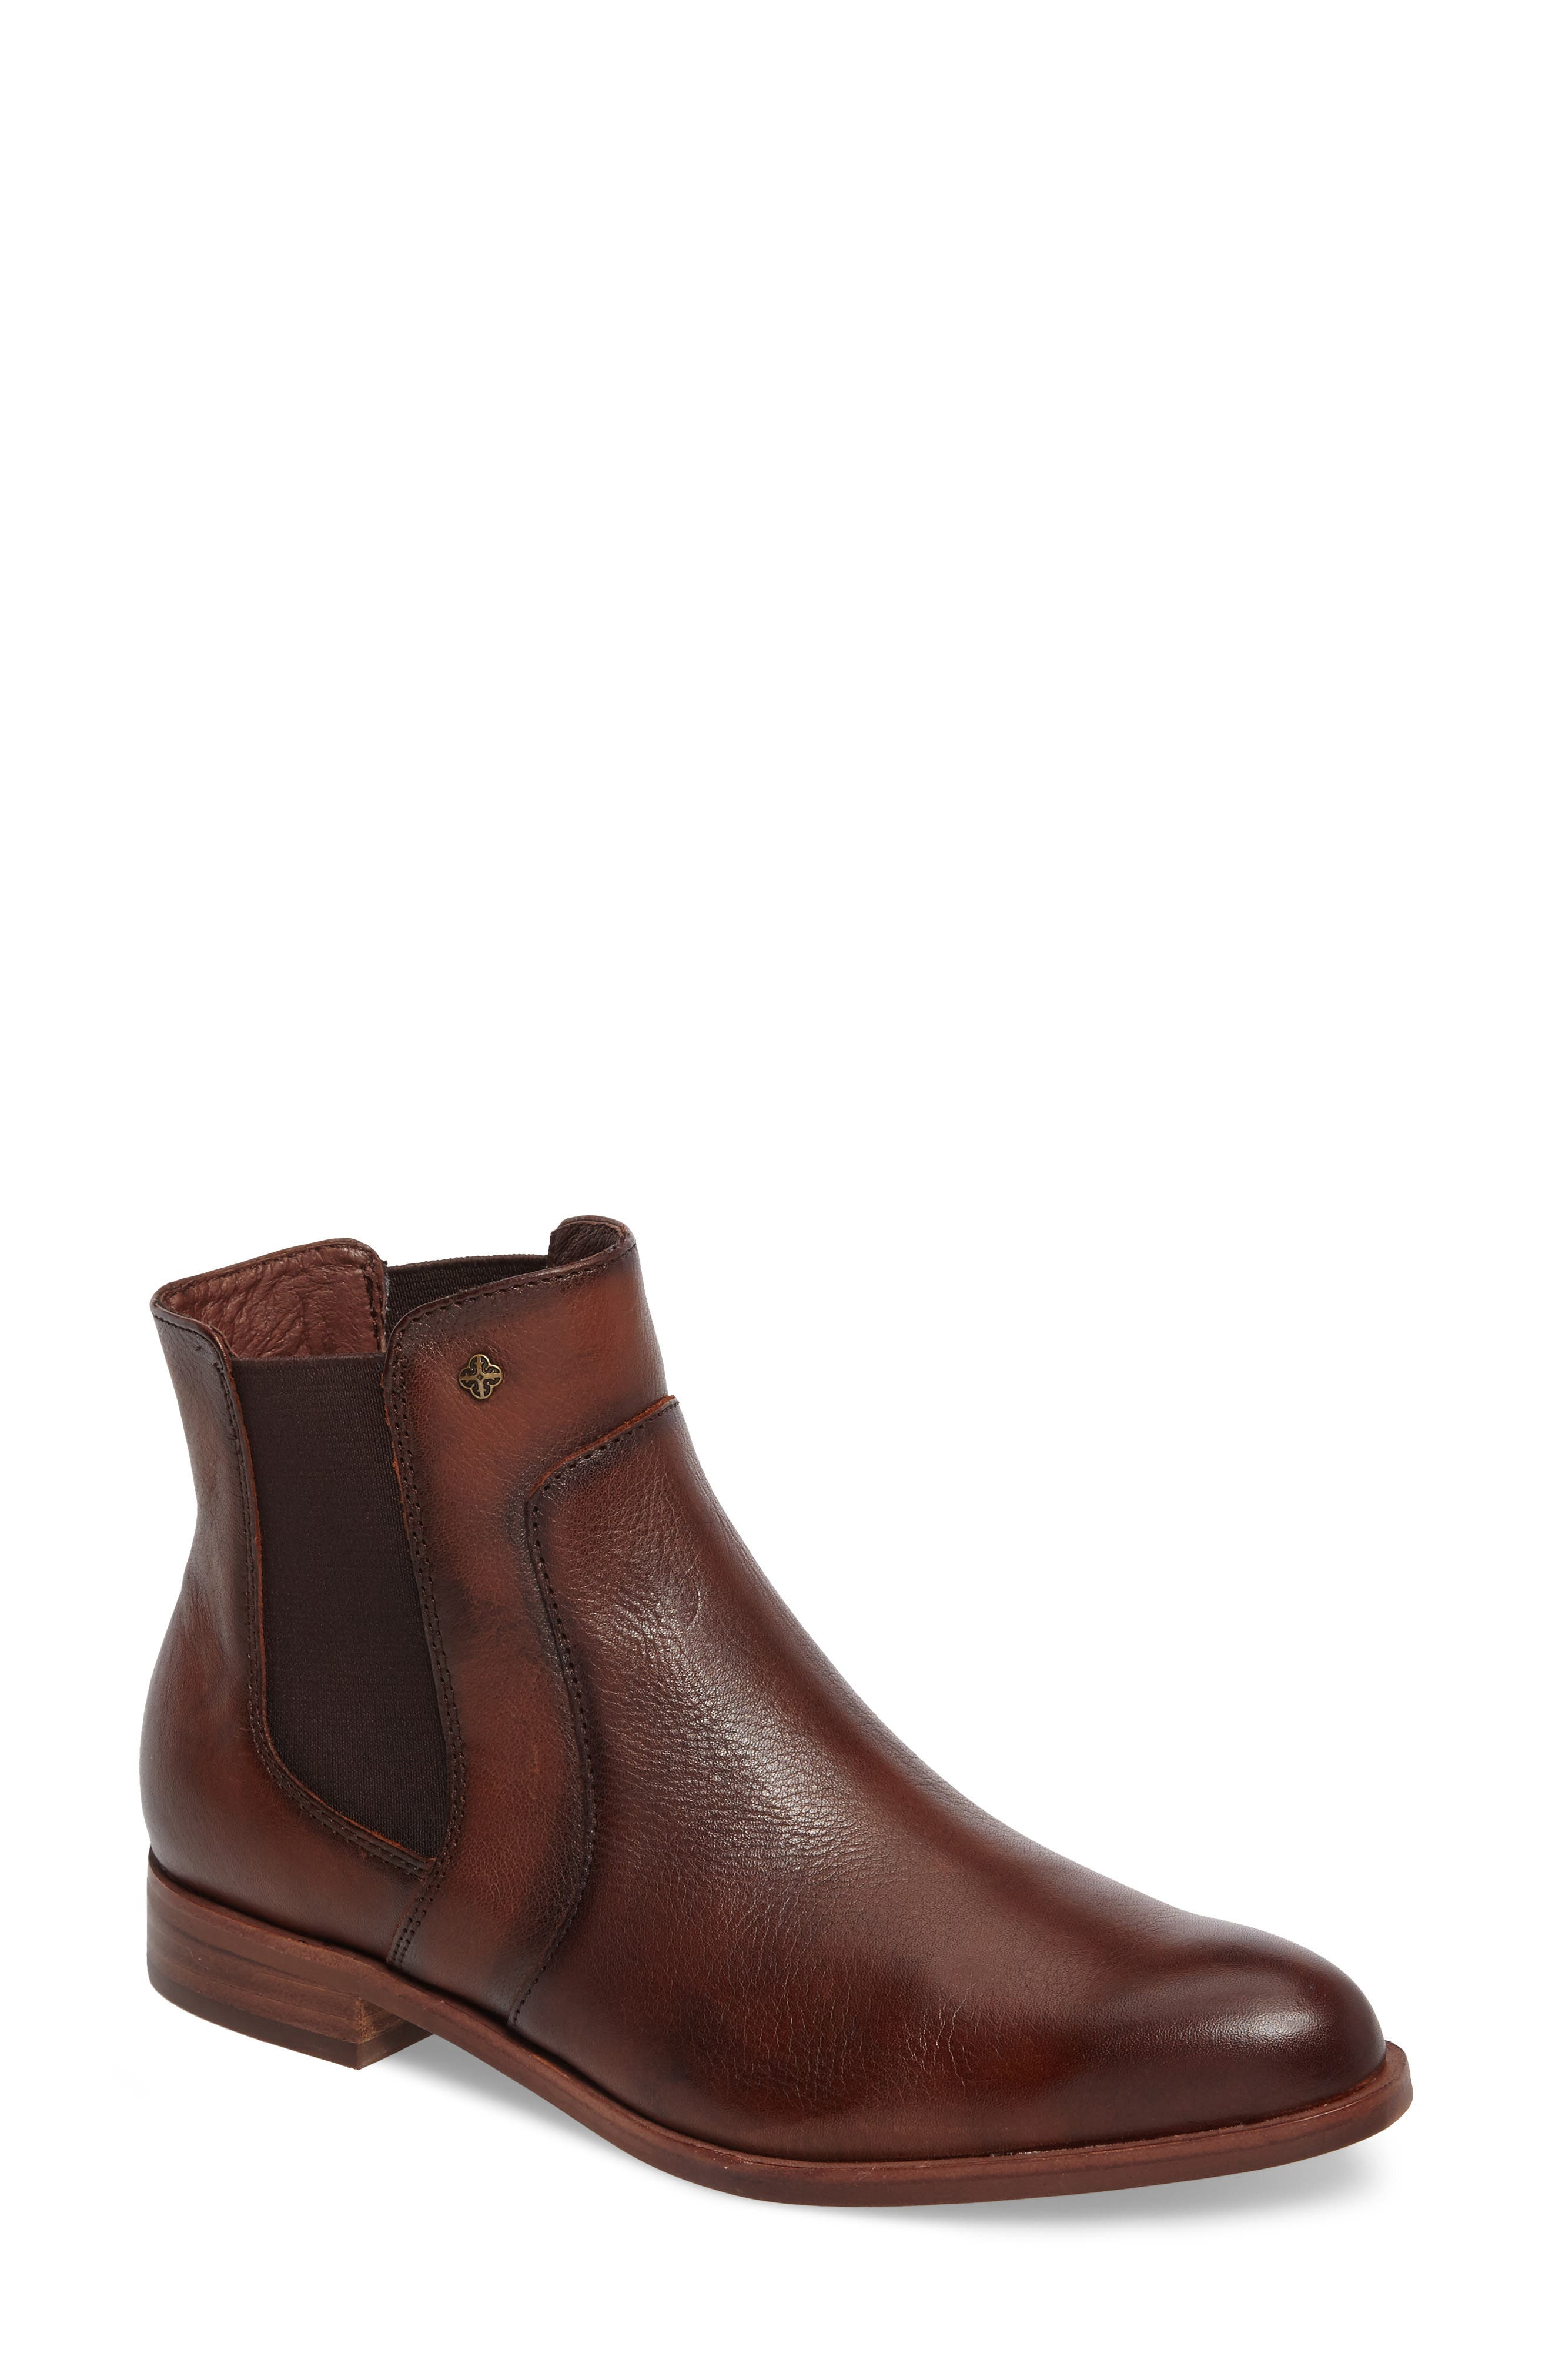 Mora Bootie,                             Main thumbnail 1, color,                             Whiskey Leather